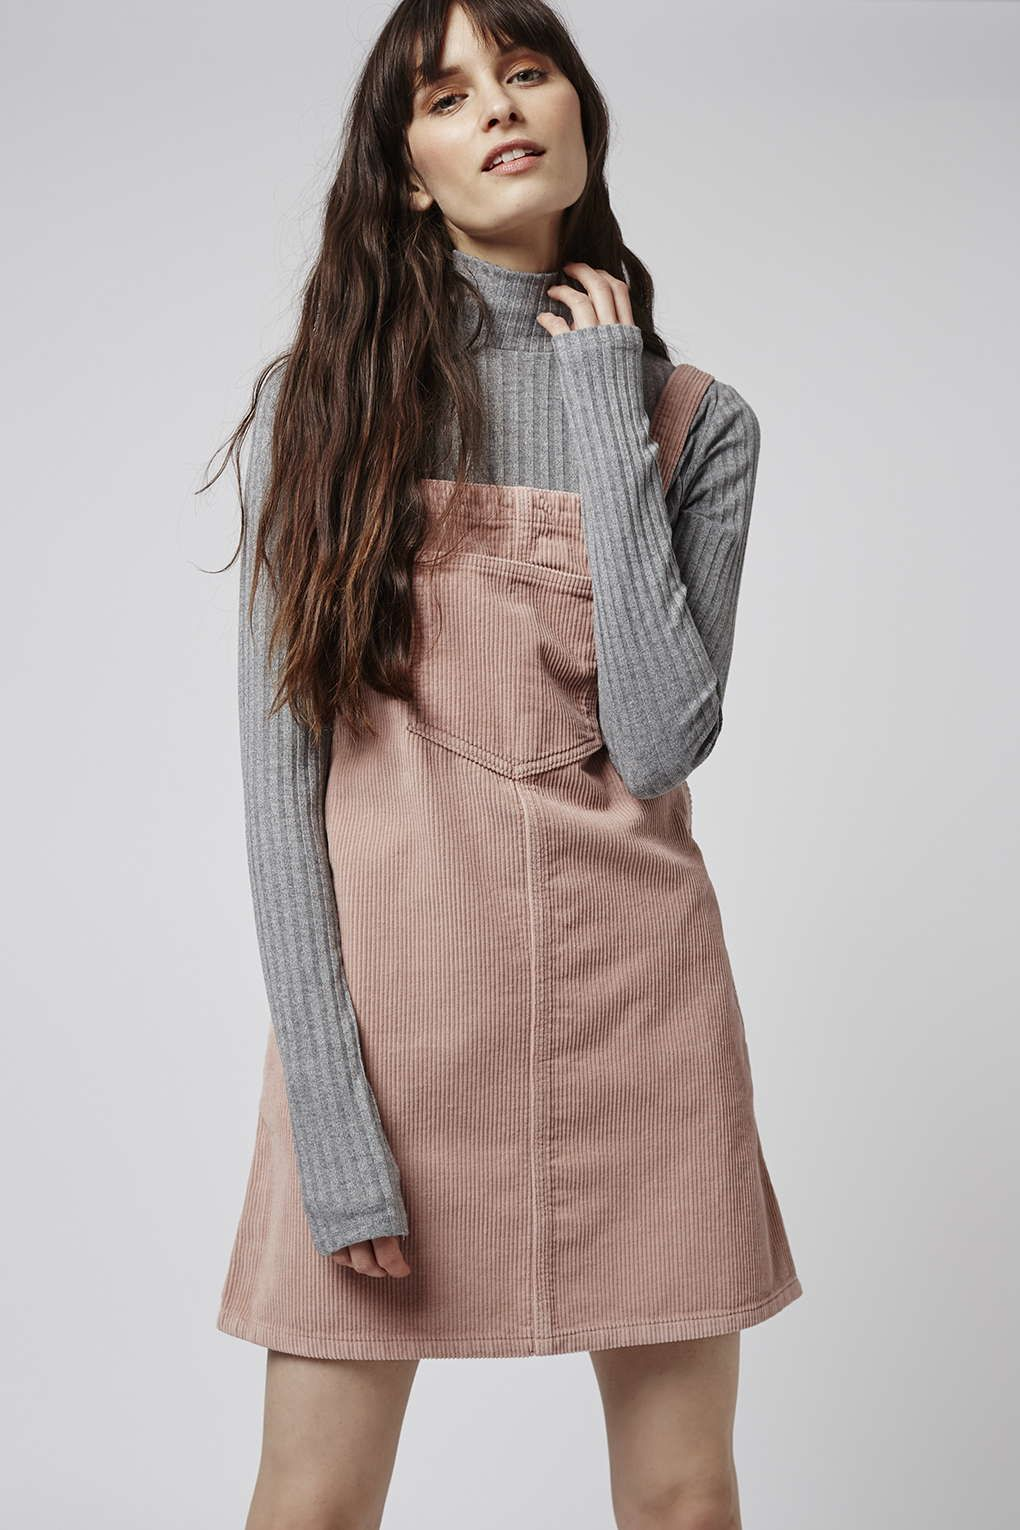 7861e08664a06 Pink Corduroy Pinafore | outfit ideas | Cord pinafore dress ...